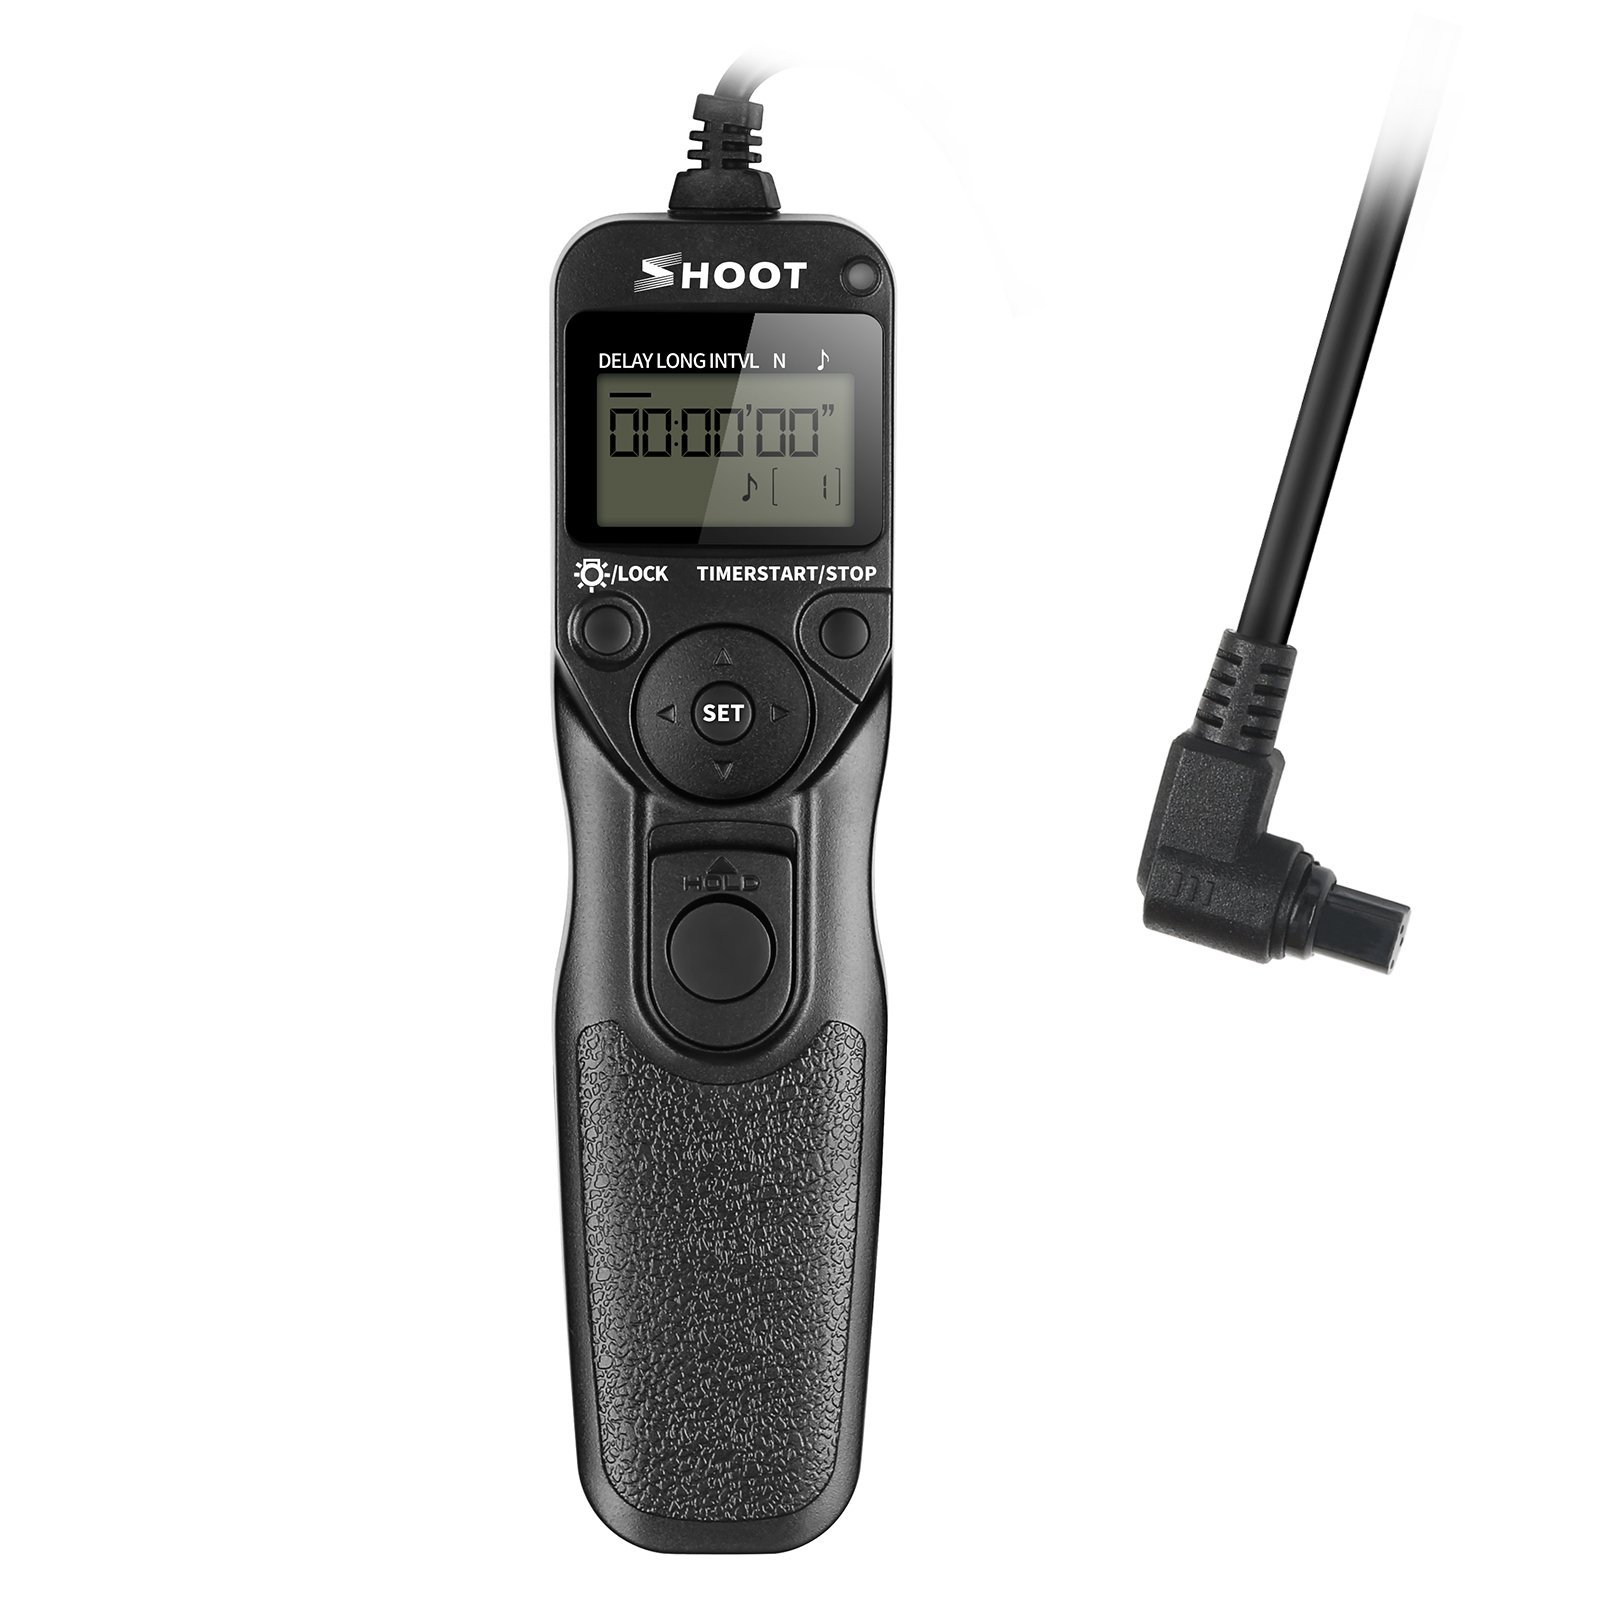 SHOOT RS-80N3 LCD Timer Remote Controller Shutter Release Cord Trigger for Canon EOS 5D 6D 7D 10D 20D 30D 40D 50D D30 D60 EOS 5D Mark II 5D Mark III EOS 1D 1D Mark II 1D Mark II N 1D Mark III 1Ds 1Ds